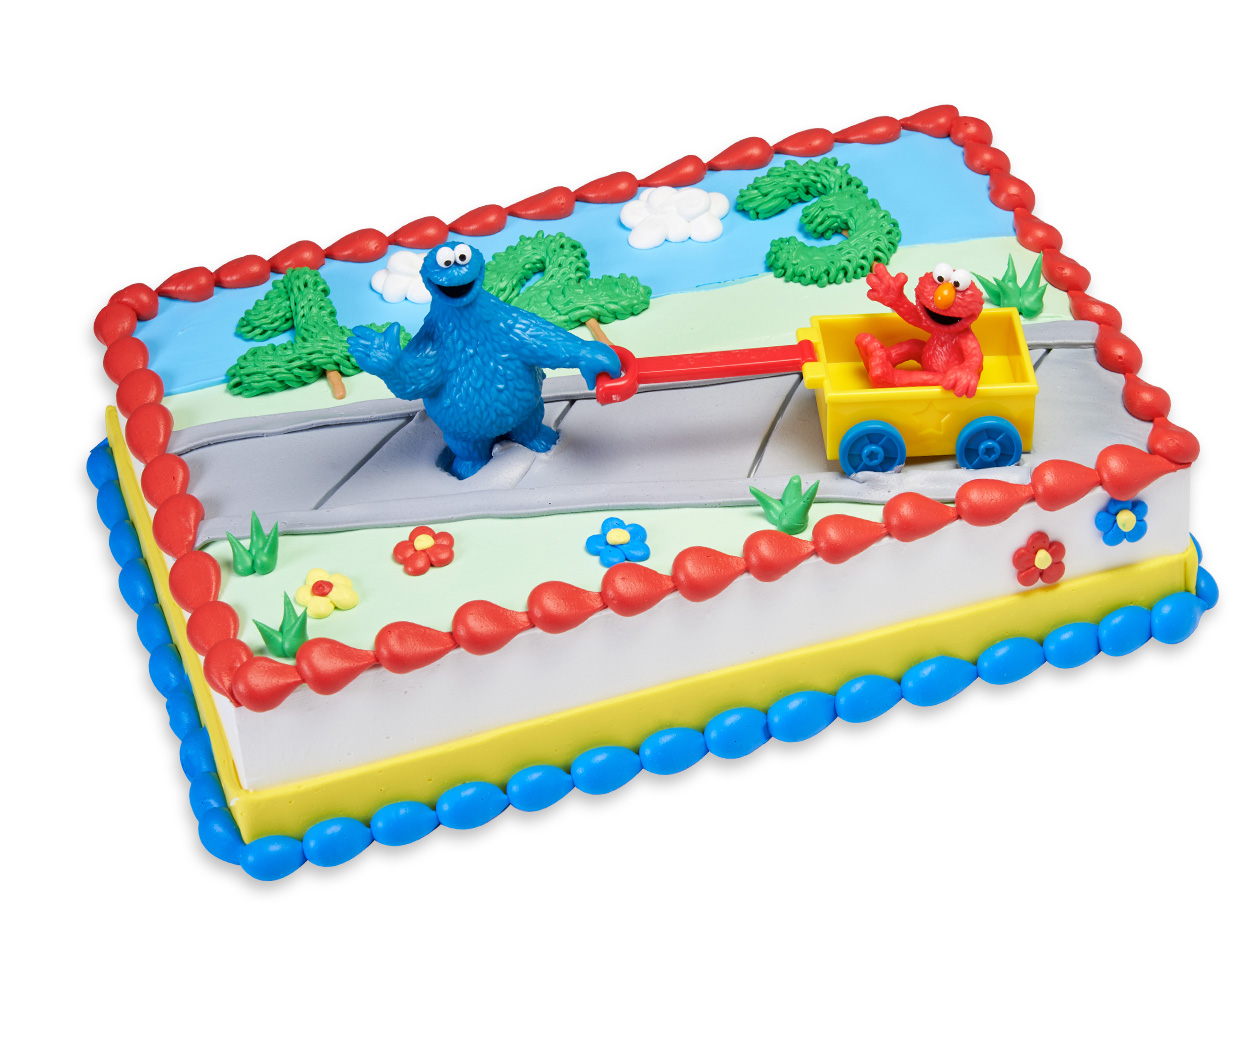 Sample Kids Themed Cake Designs Show All